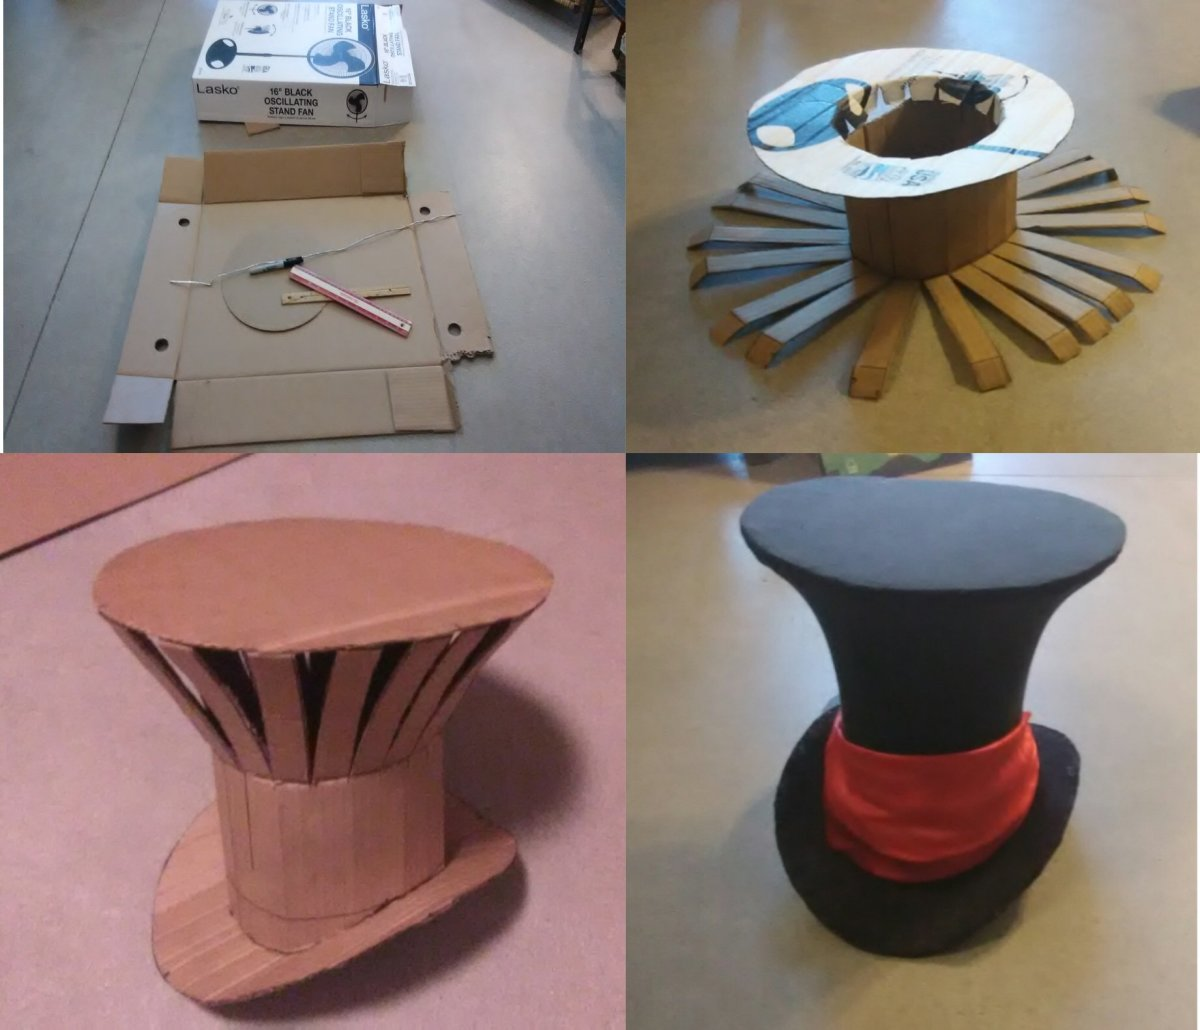 The Mad Hatter of Loveland Top Hat Design: From Cardboard Box to Complete Mad Hatter Top Hat